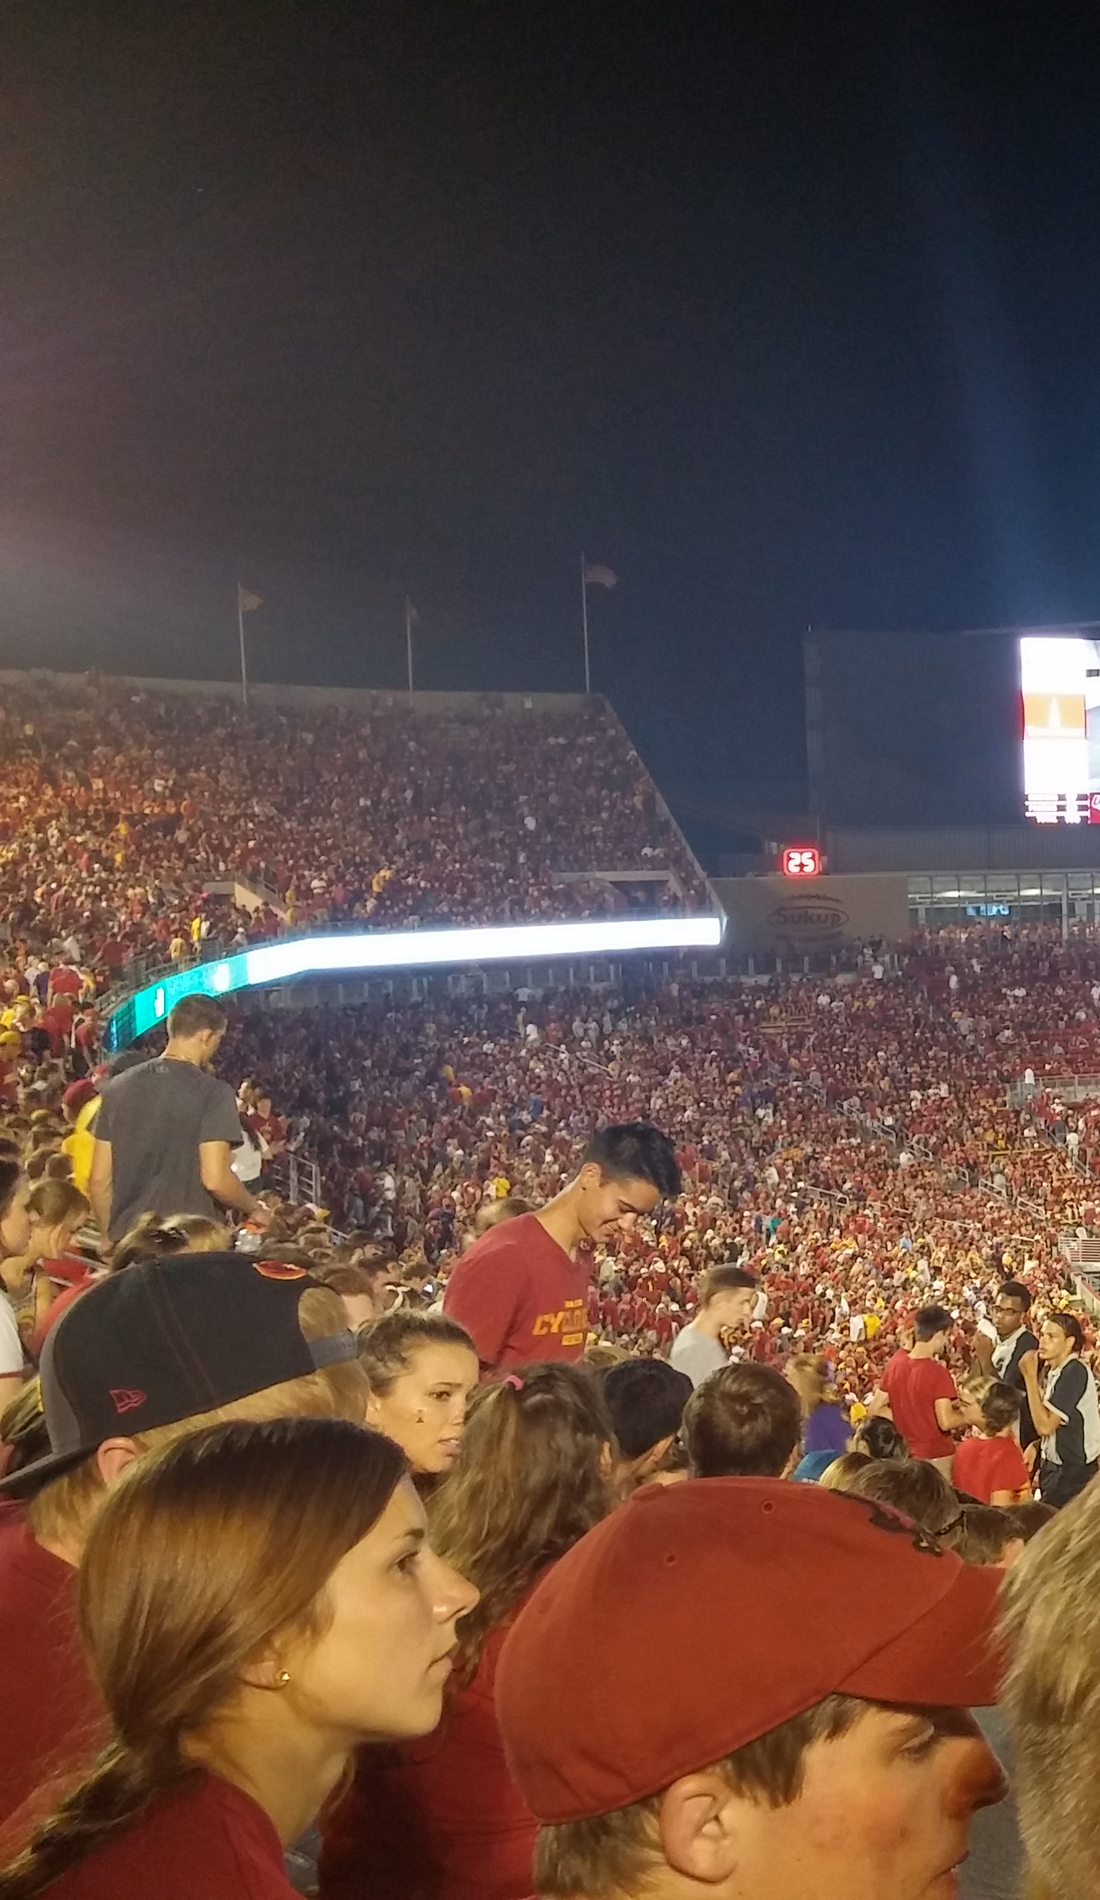 A Iowa State Cyclones Football live event